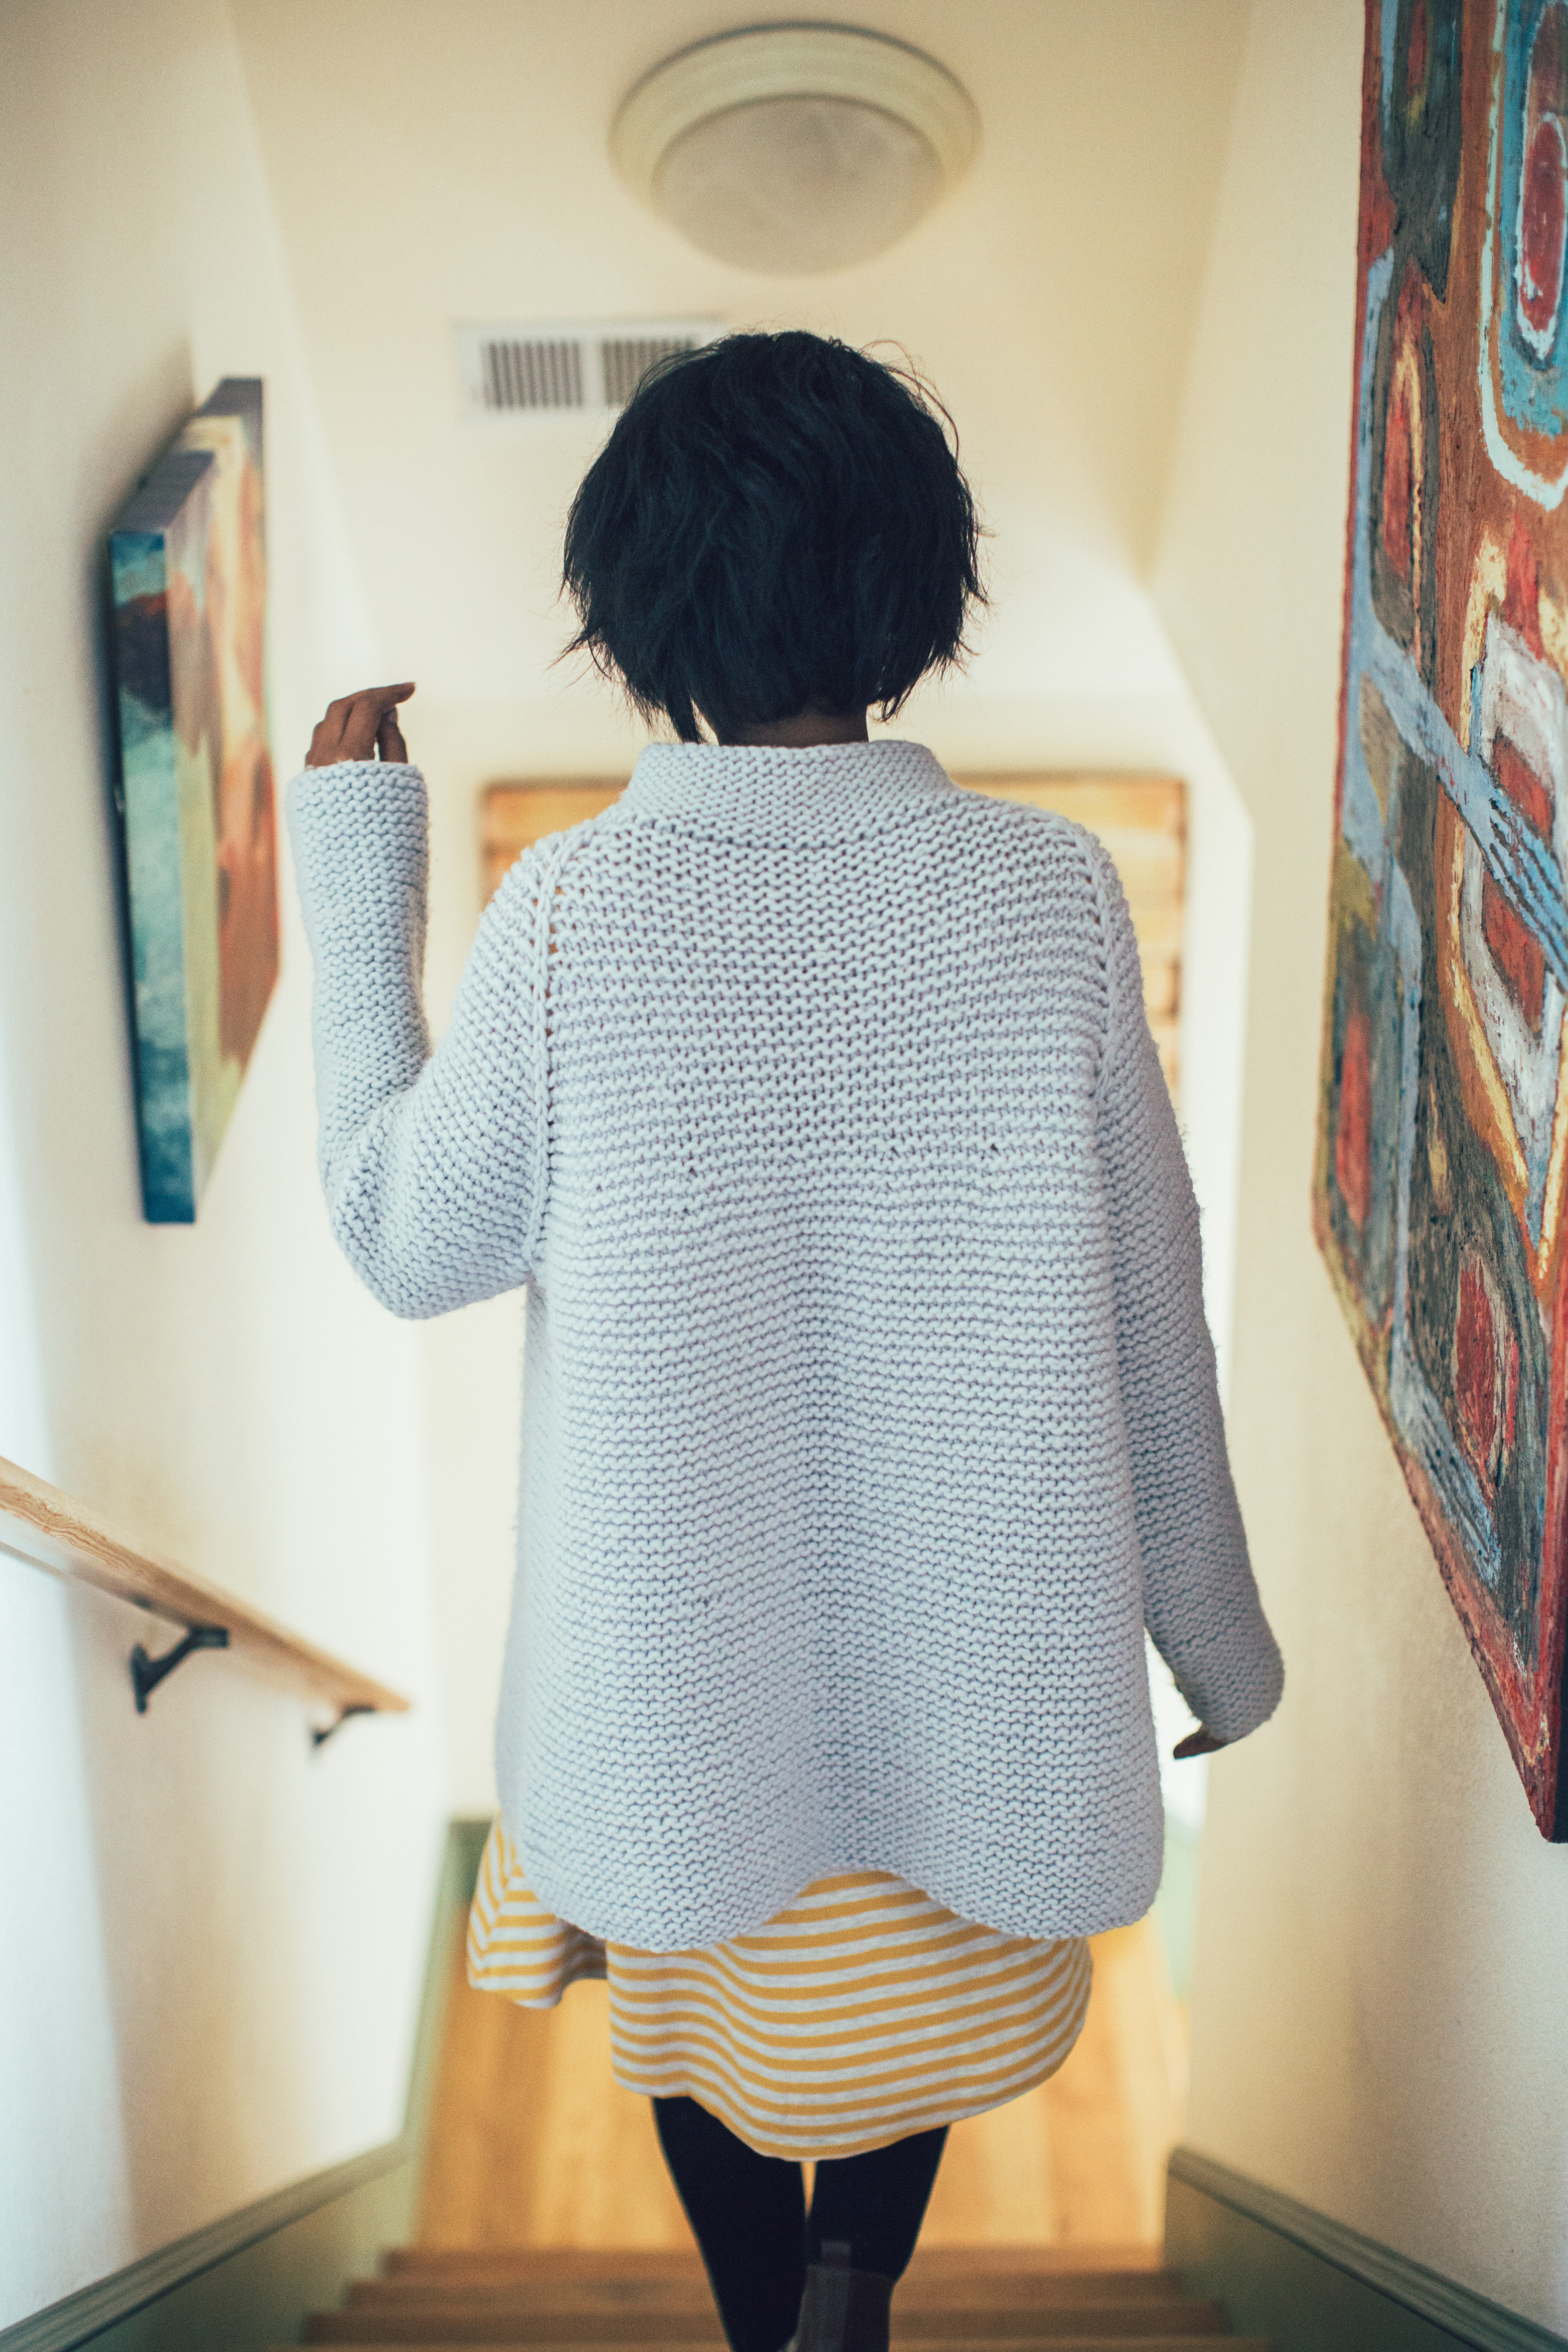 Vanilla Jacket knitting pattern by Mary Anne Benedetto from knitscene Winter 2016